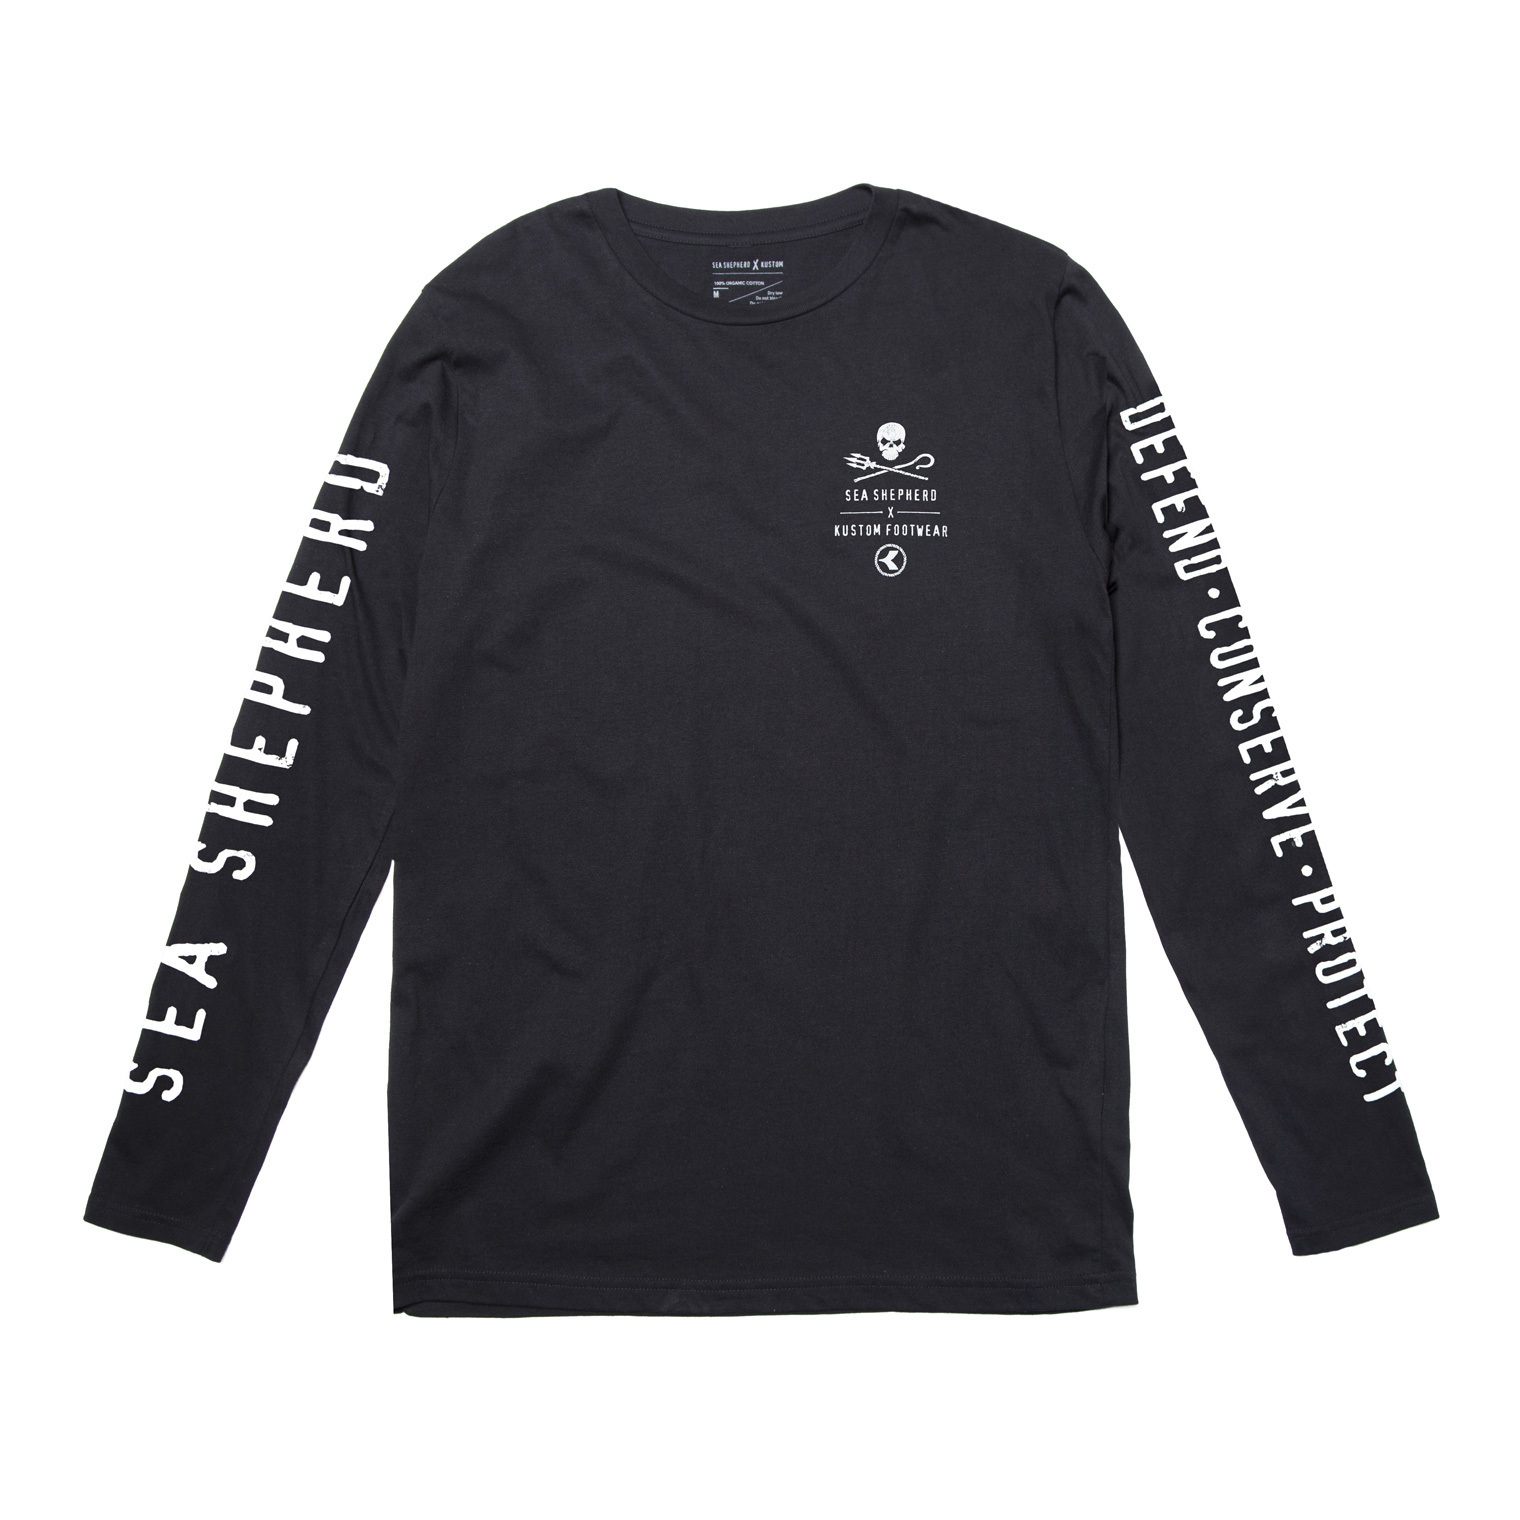 KUSTOM SEA SHEPHERD X KUSTOM OCEAN PROJECTS SS DCP LONGSLEEVE